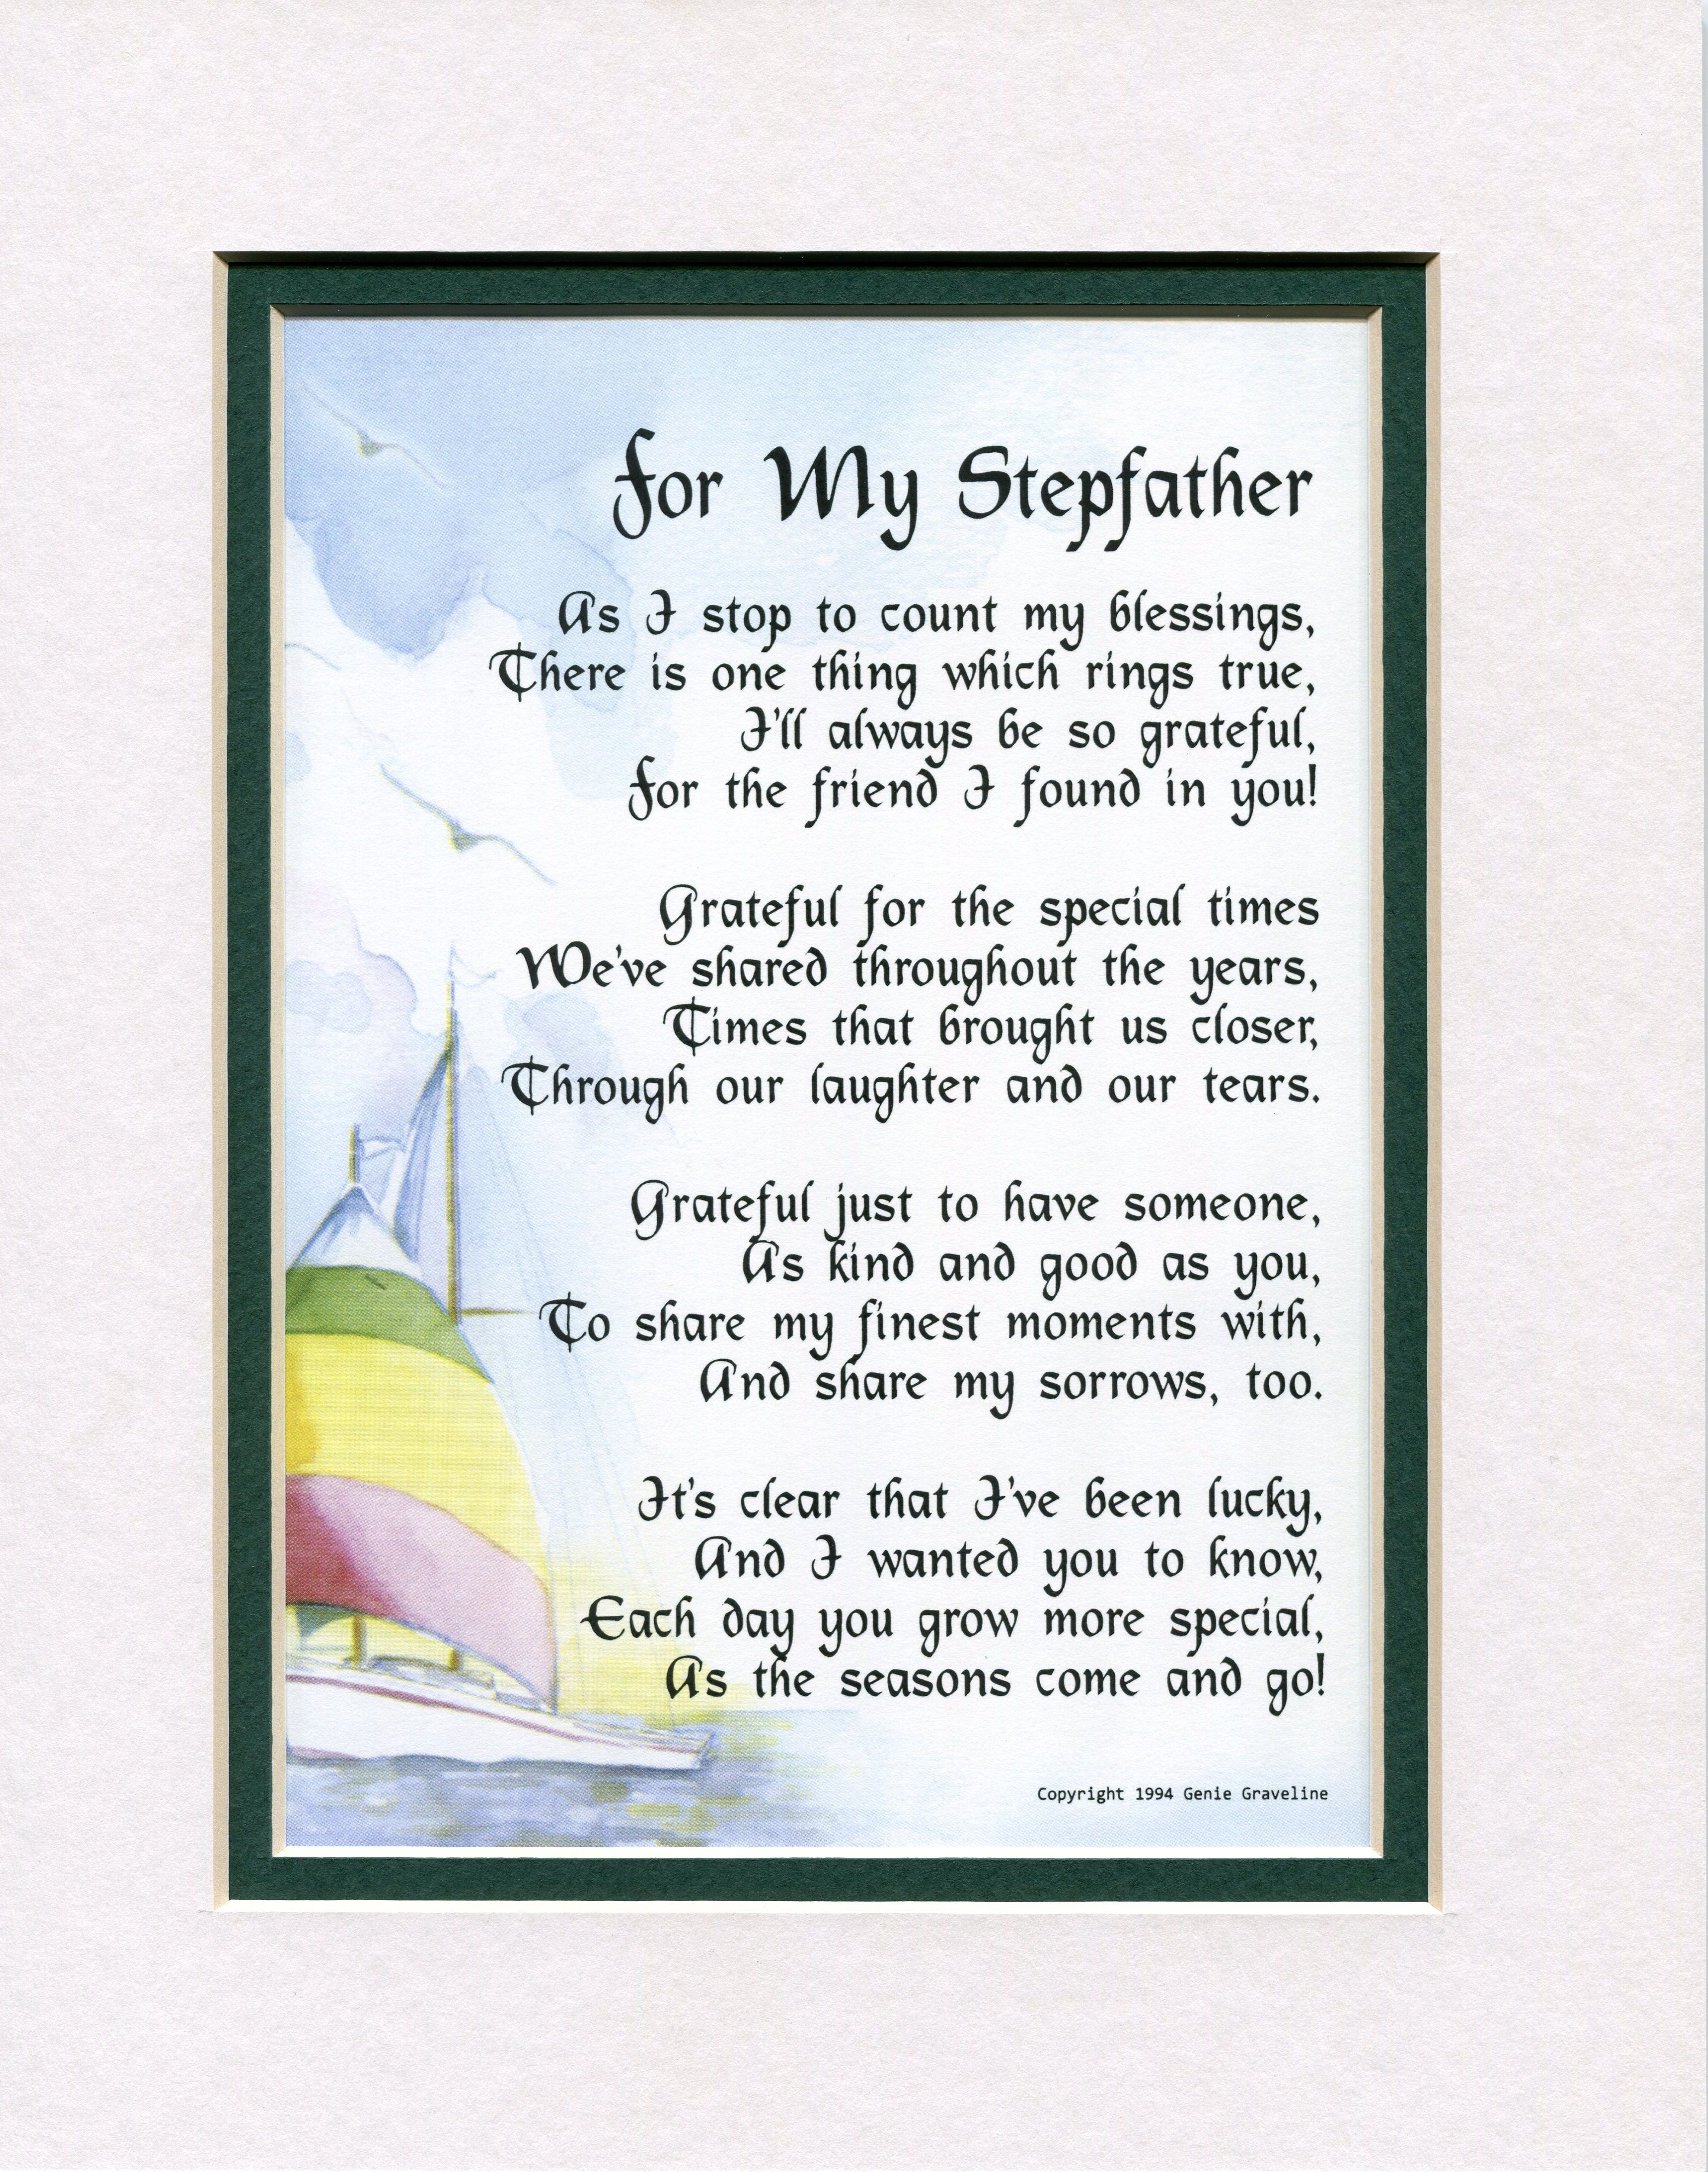 Wedding Gift For Step Dad : gifts fathers day poems meaningful gifts father s day gifts diy gifts ...